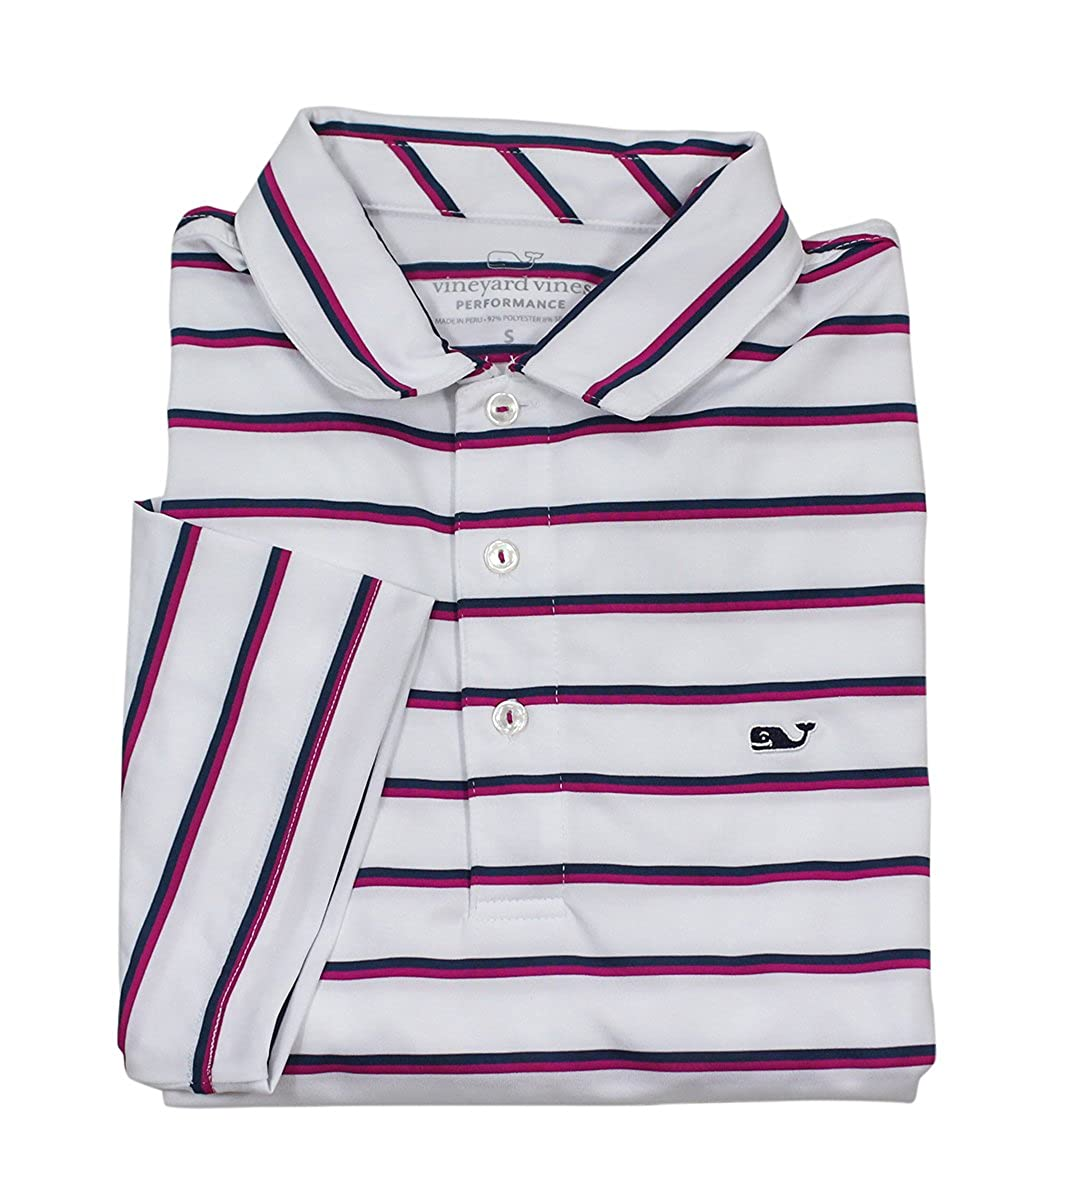 VINEYARD VINES Mens Eshman Stripe Performance Polo White Cap